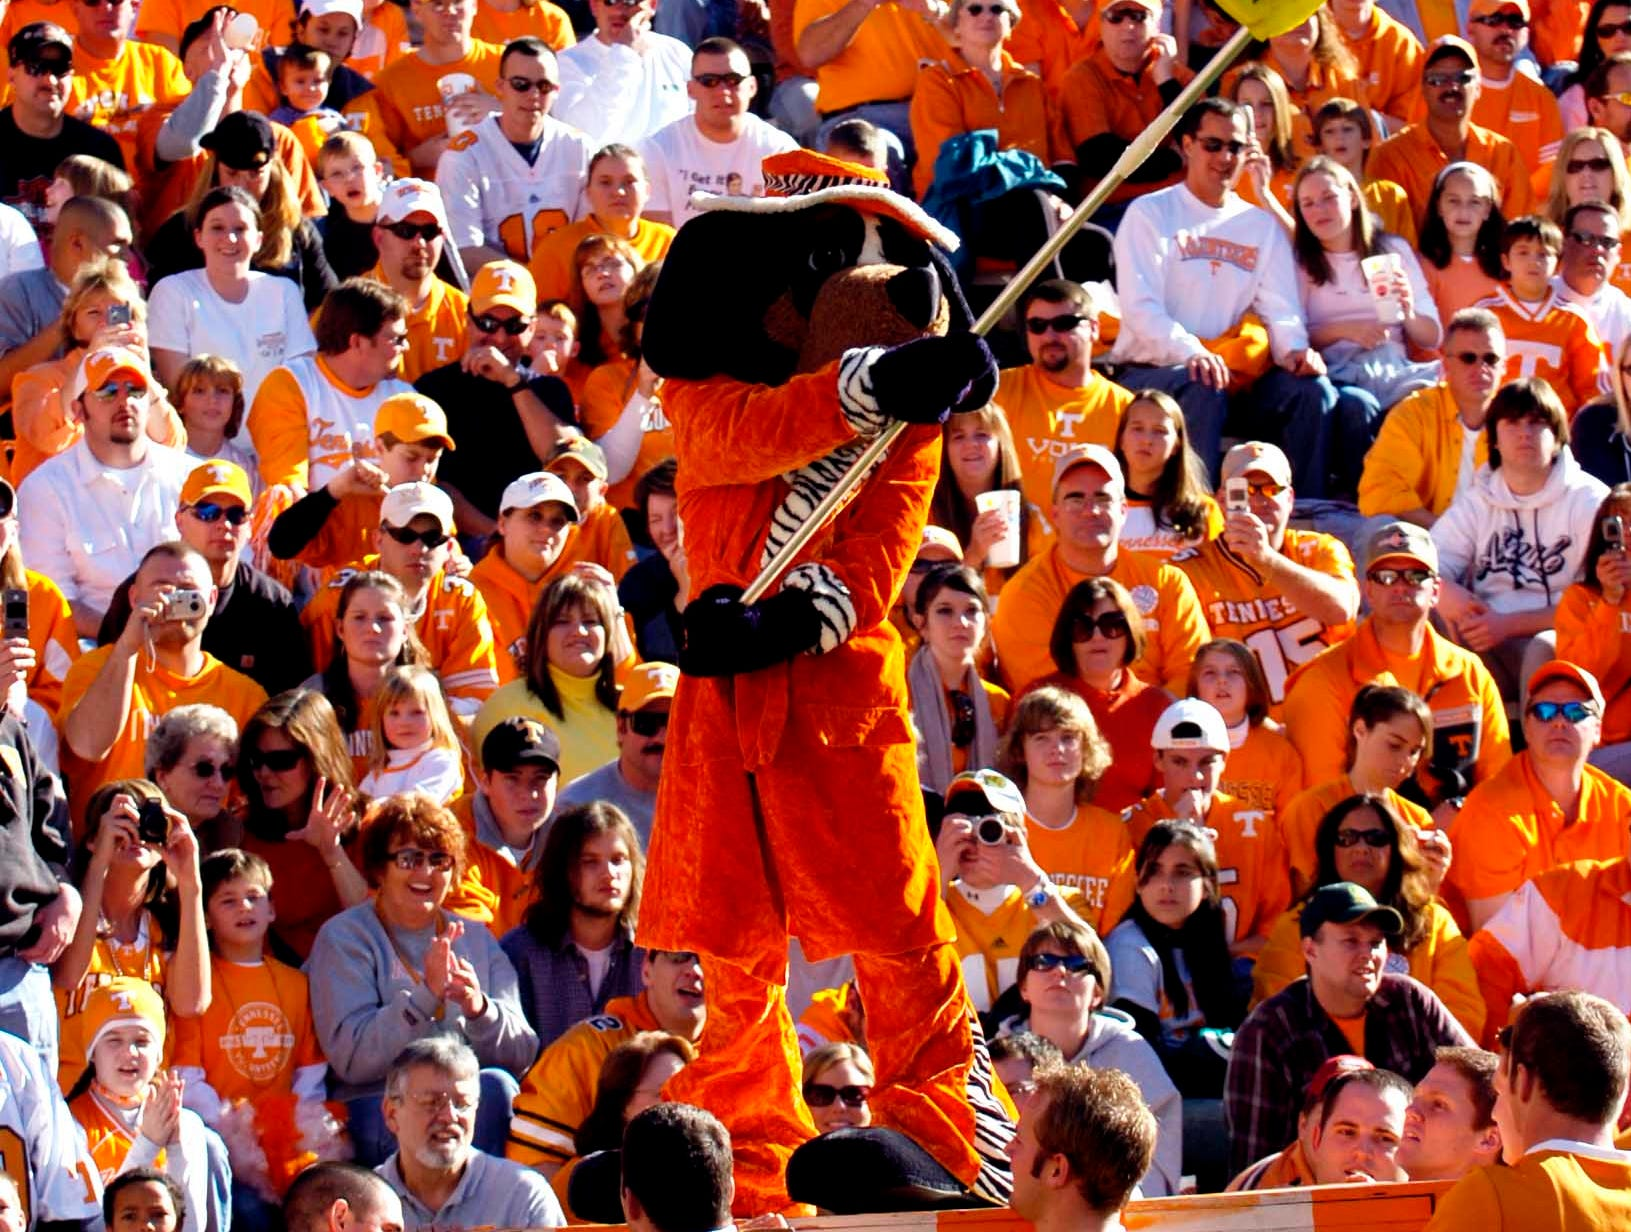 Smokey campaigns for the Capital One Mascot of the Year title during the Kentucky game Saturday at Neyland Stadium.    